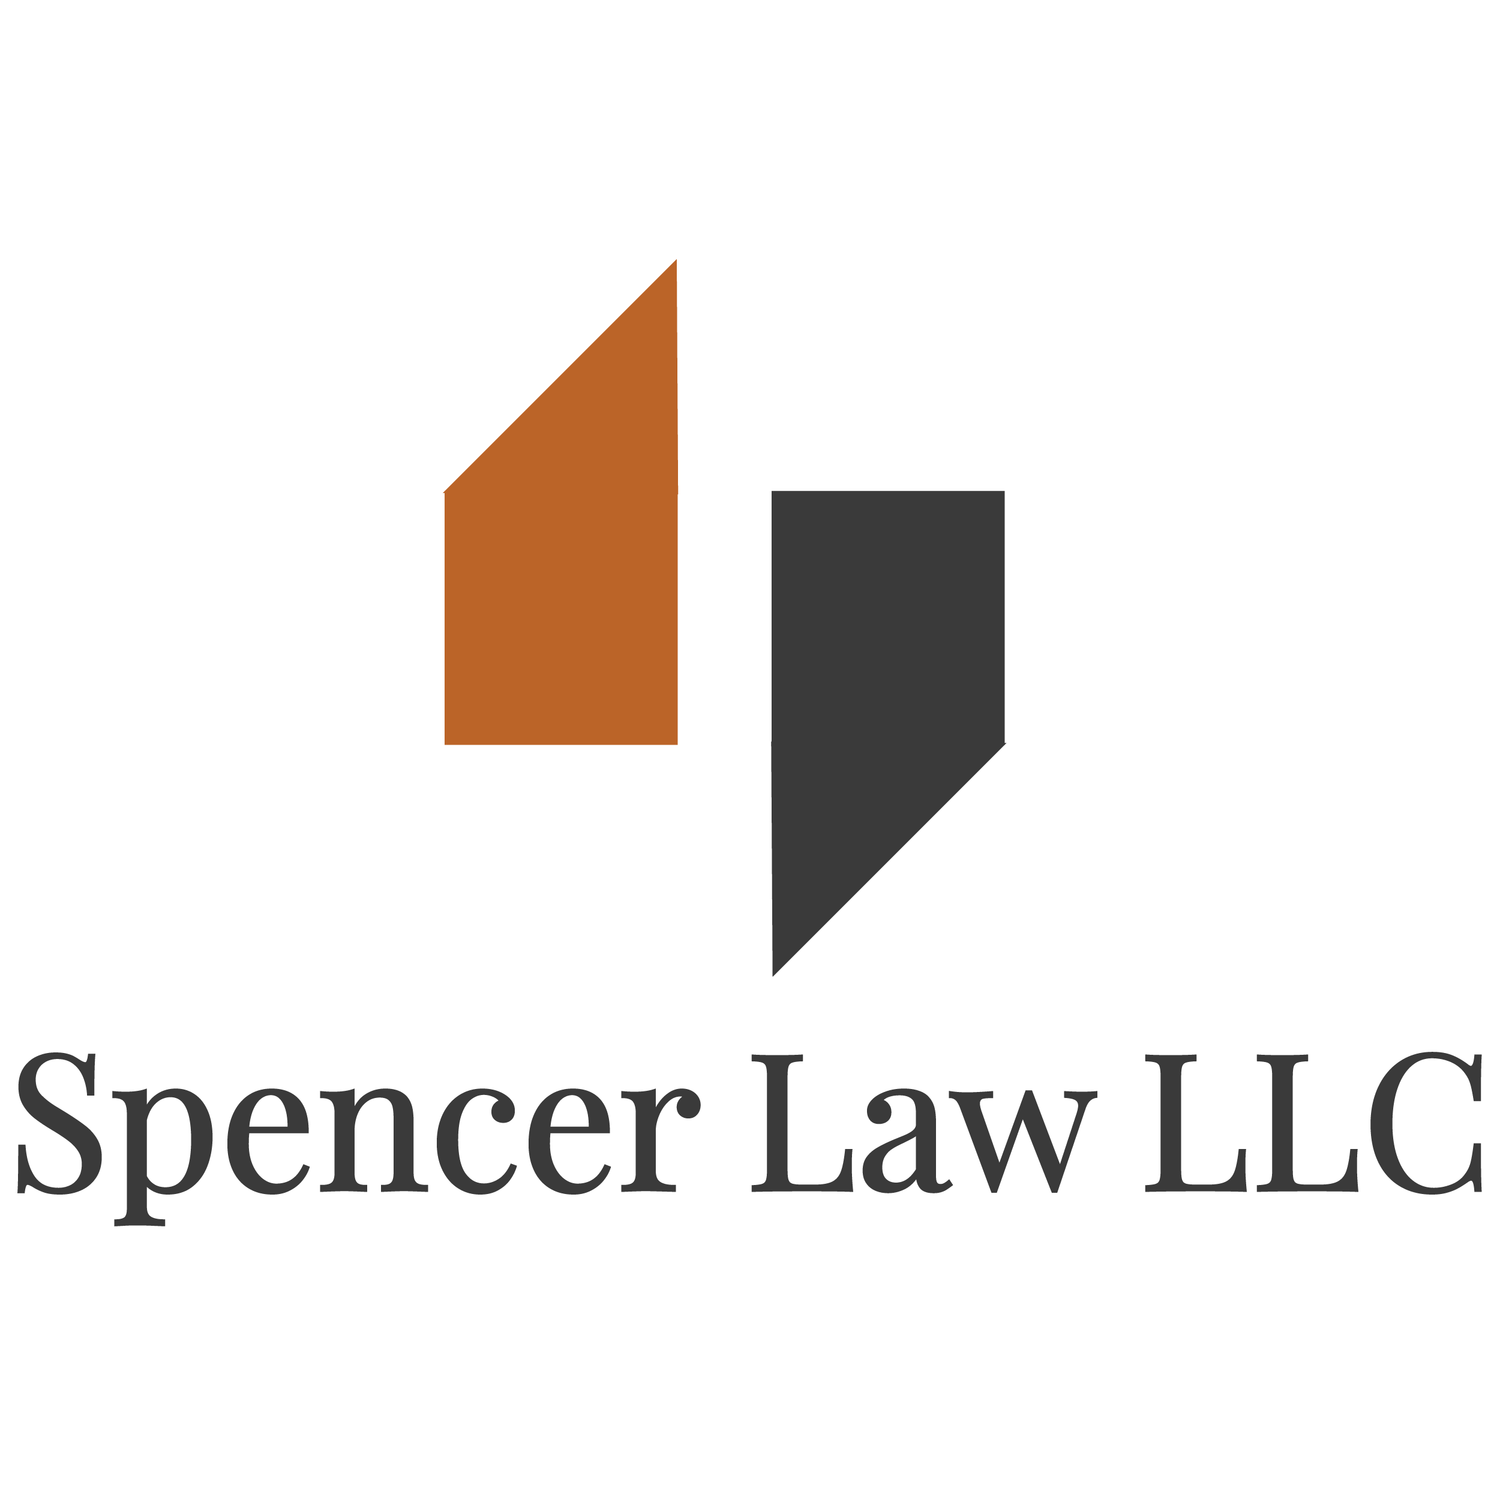 Spencer Law LLC